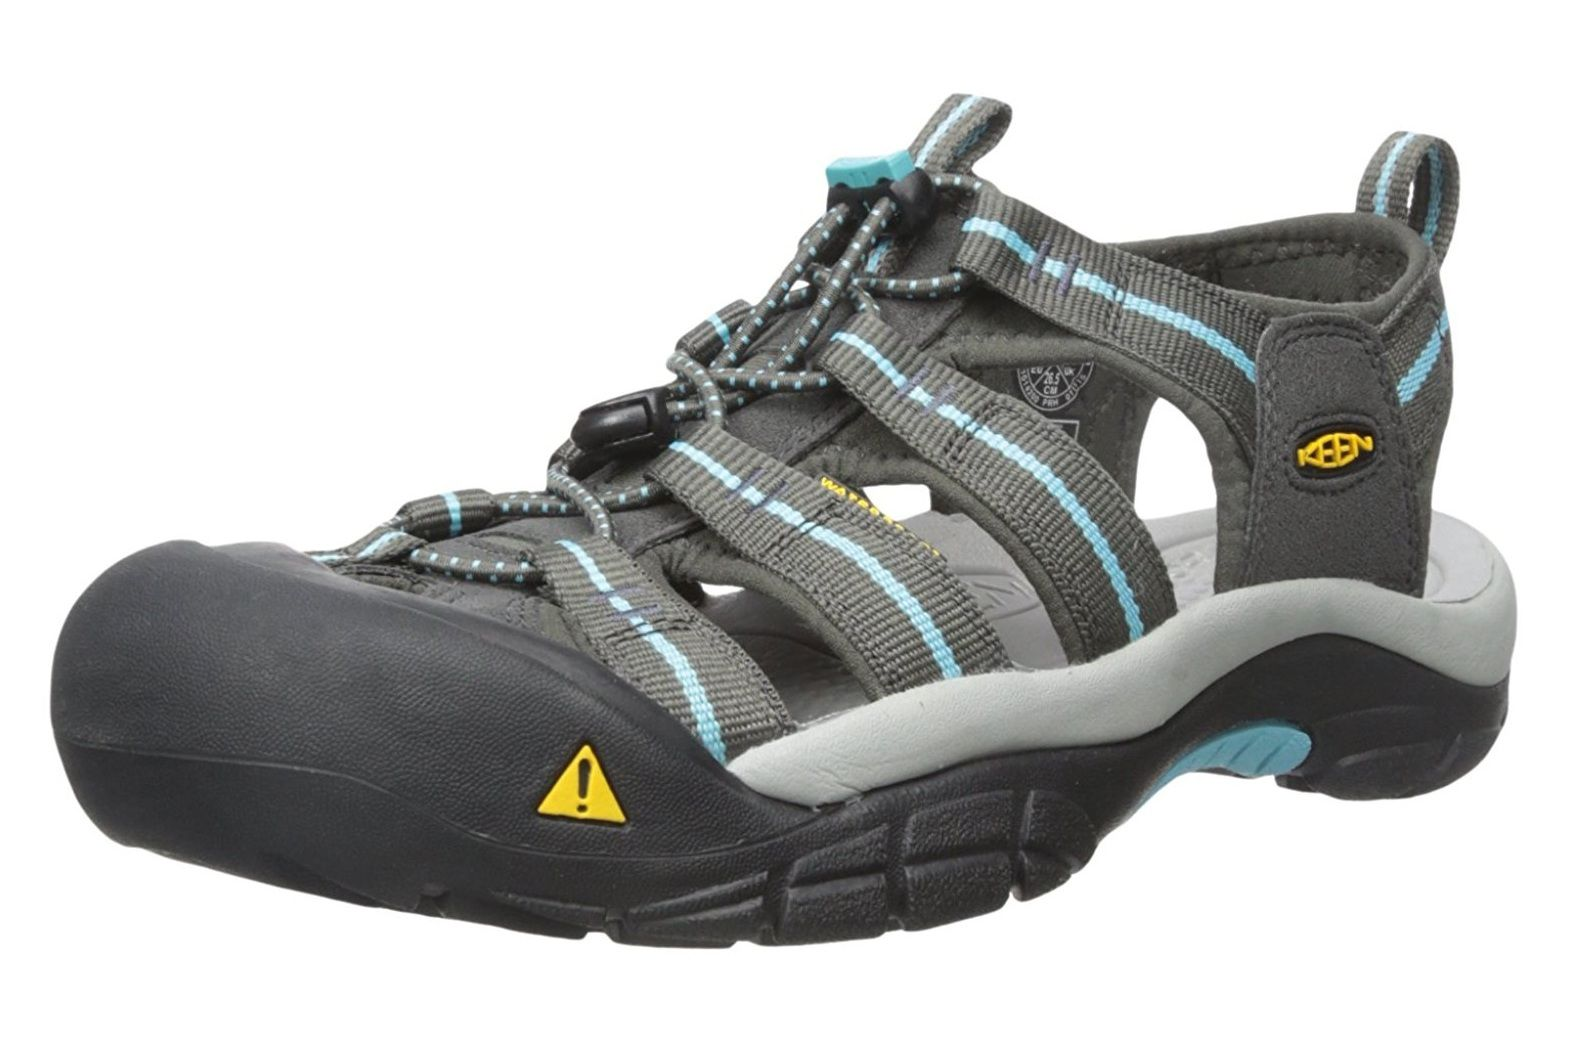 a06fca82d59d2 The 9 Best Walking Sandals of 2019